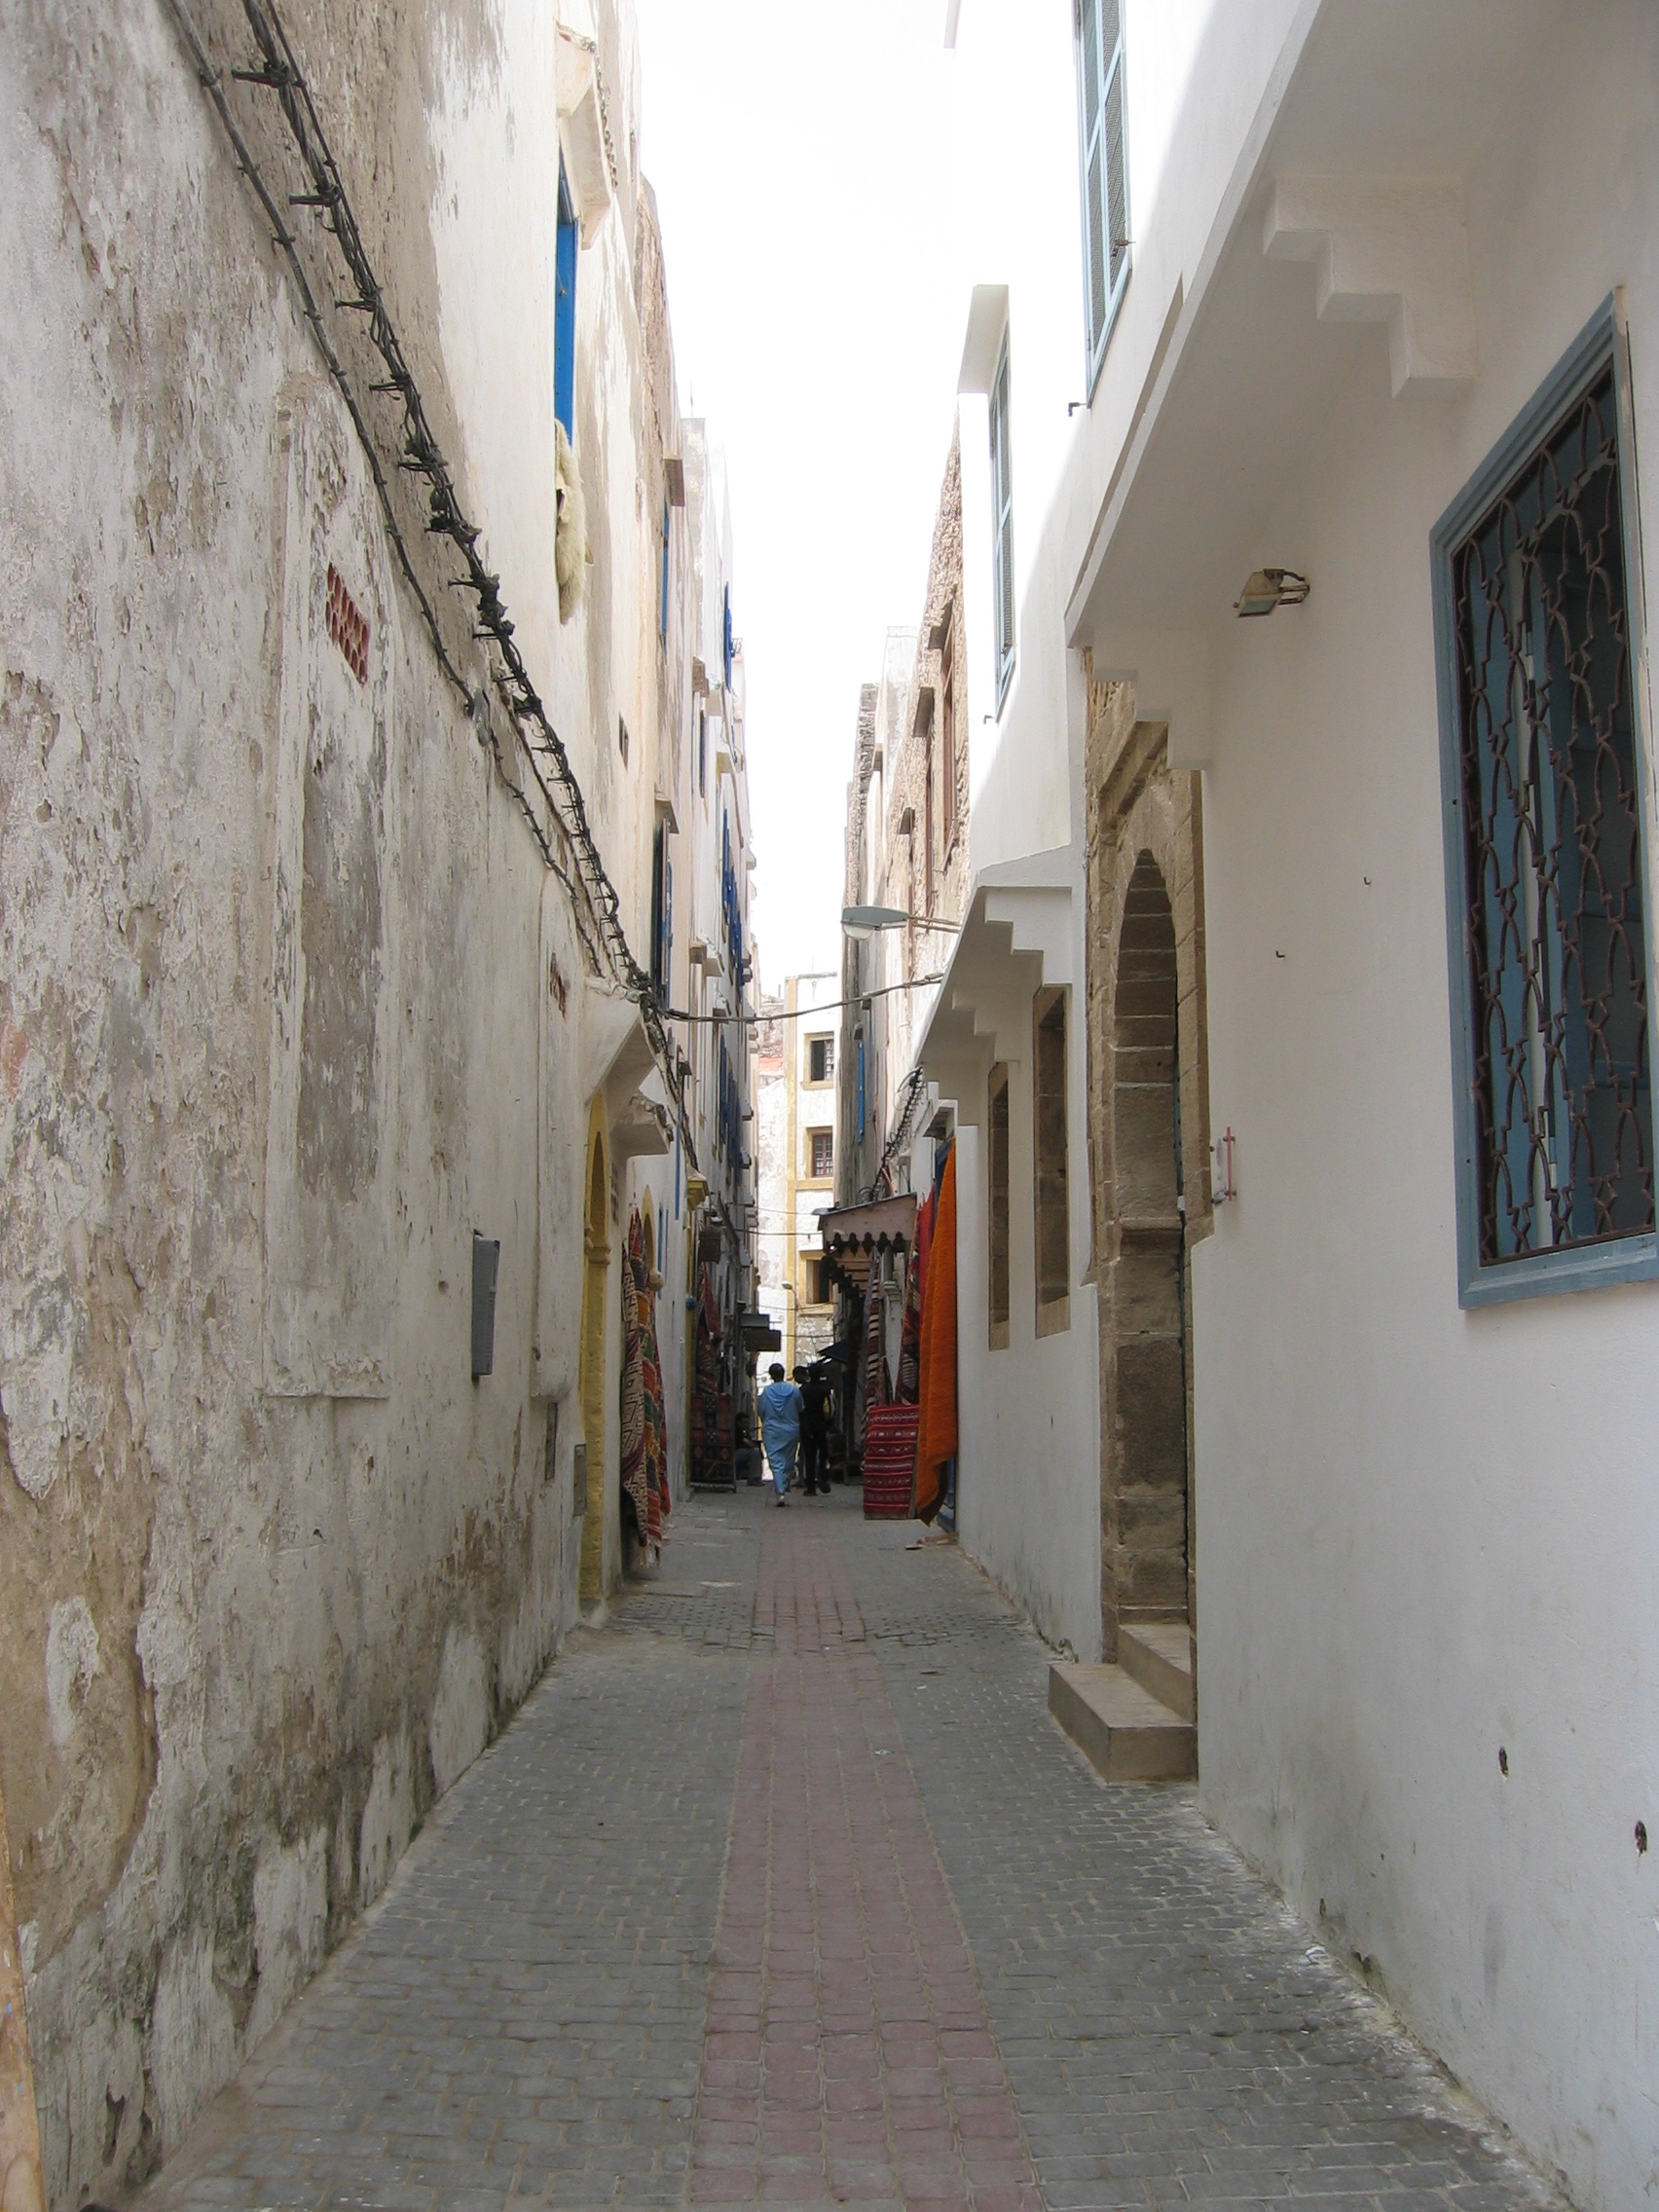 Http Commons Wikimedia Org Wiki File Narrow Street 2901163023 Jpg